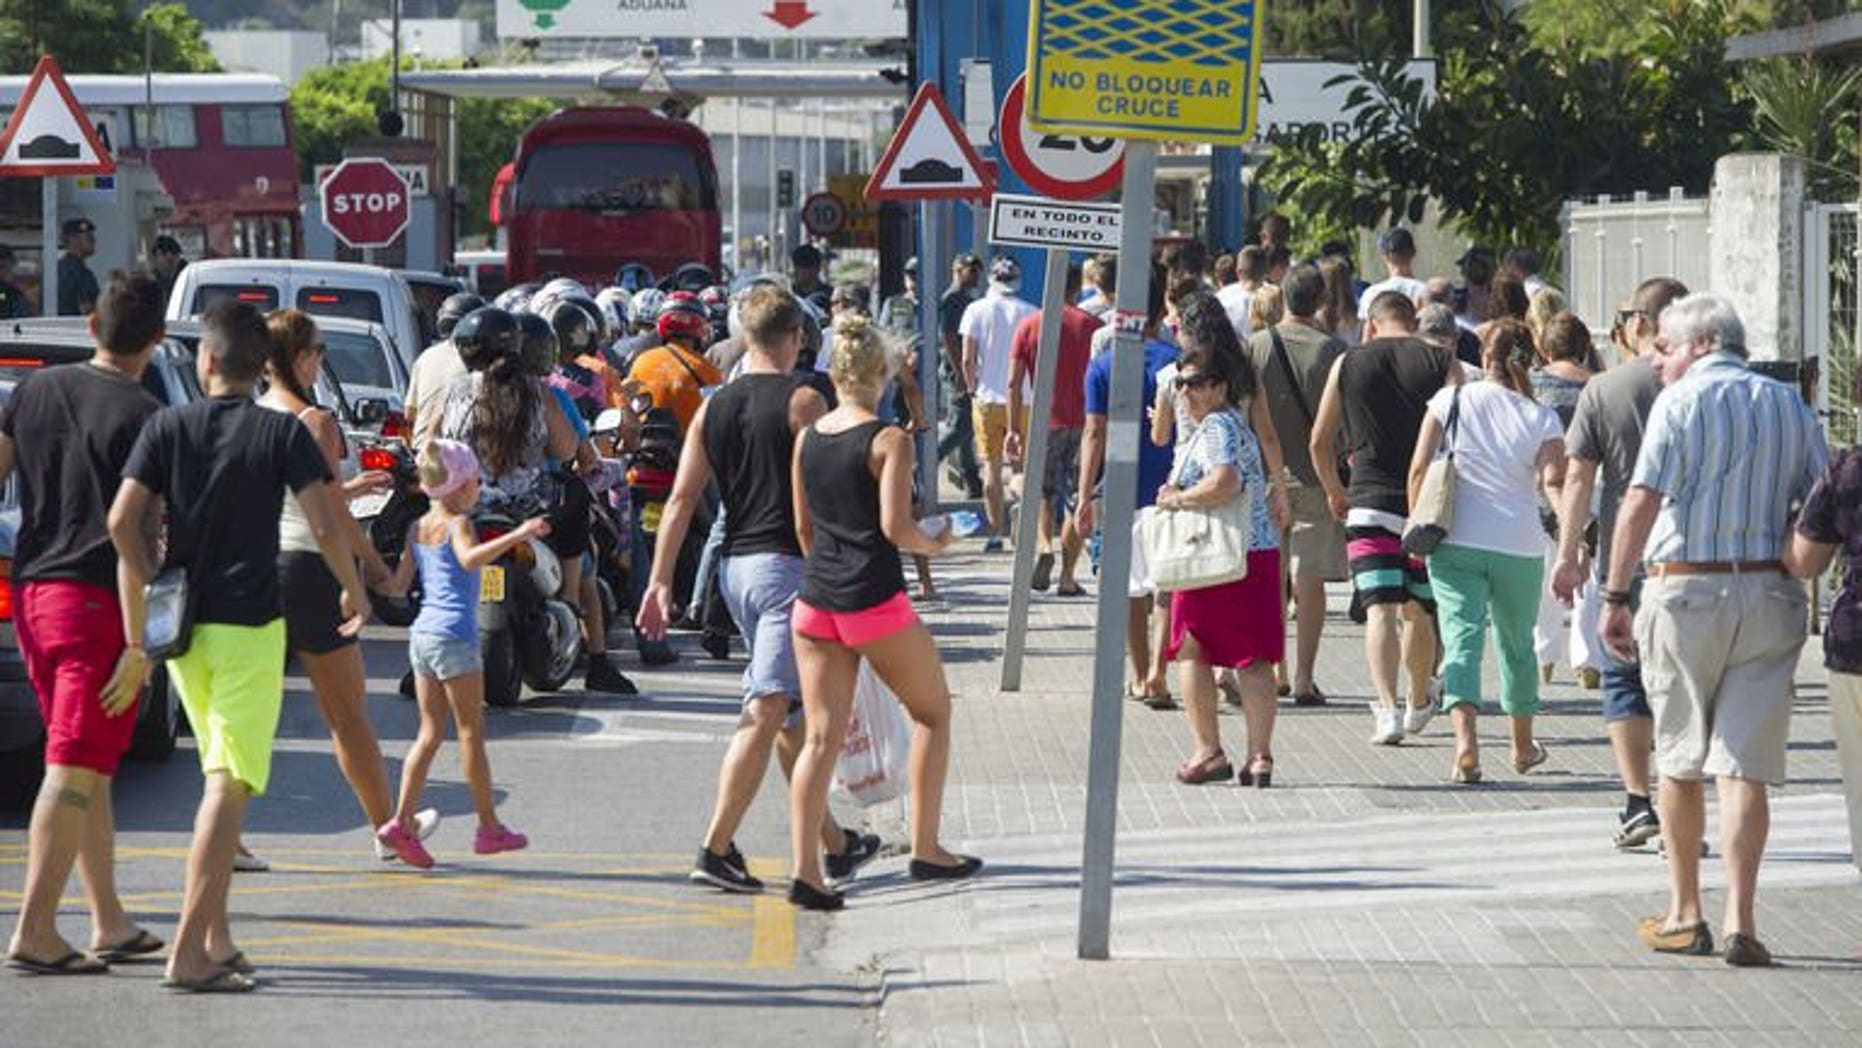 """Motorists queue to cross the border between Spain and Gibraltar in La Linea de la Concepcion on August 15, 2013. British Prime Minister David Cameron has called on European Commission president Jose Manuel Barroso to send monitors to observe """"politically motivated"""" checks at Spain's border with Gibraltar as soon as possible, Downing Street said Friday."""